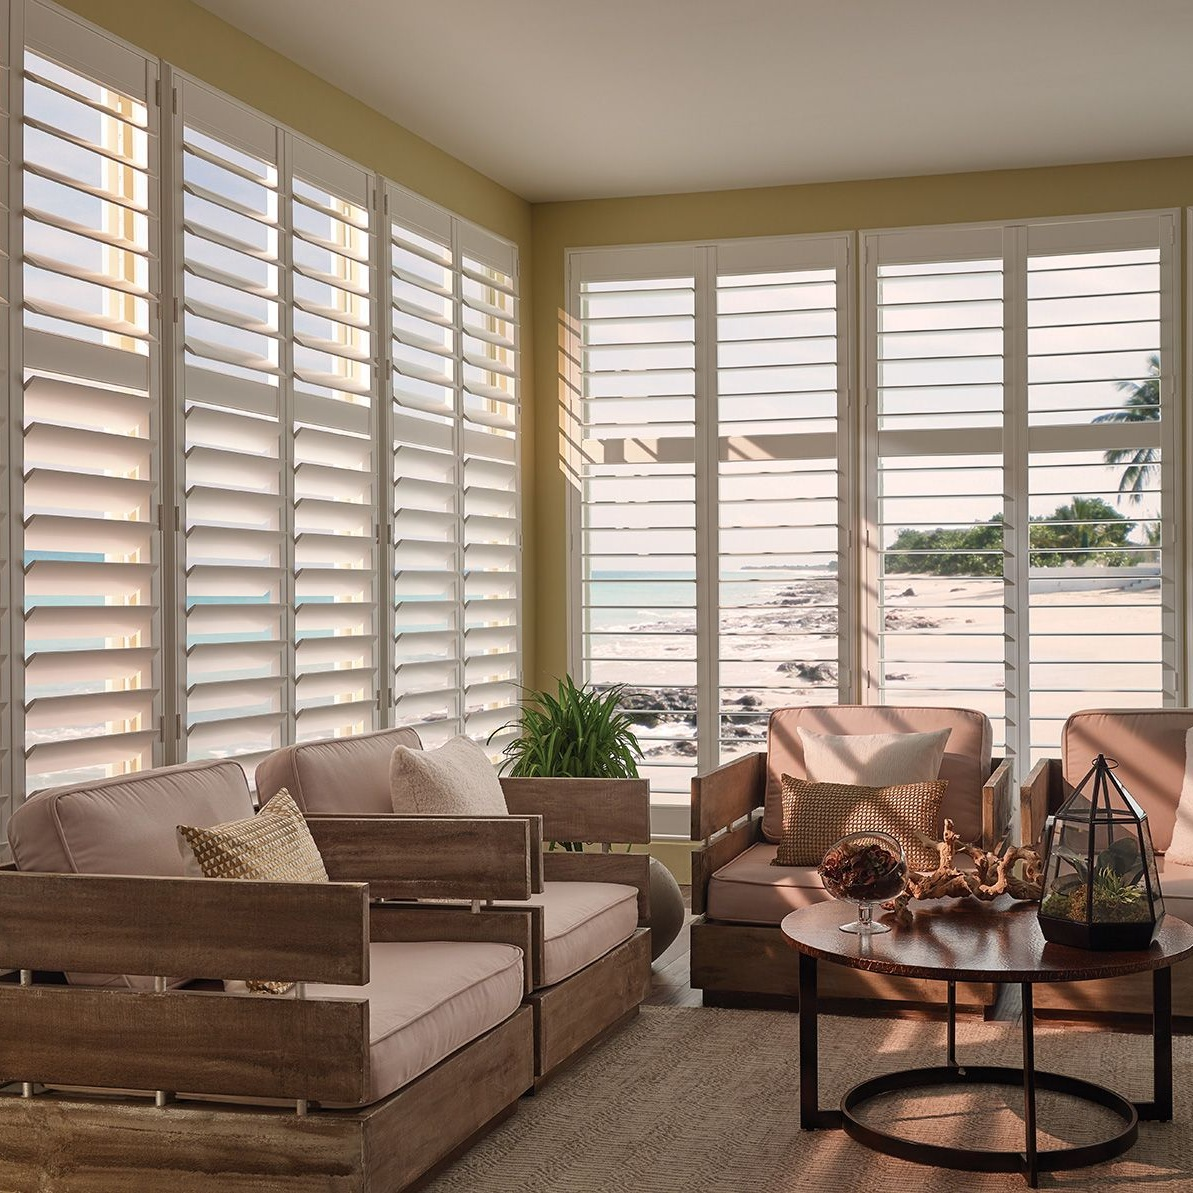 Shutters - Save up to 50% on Custom ShuttersHunter - Norman - Eclipse - KeyWest